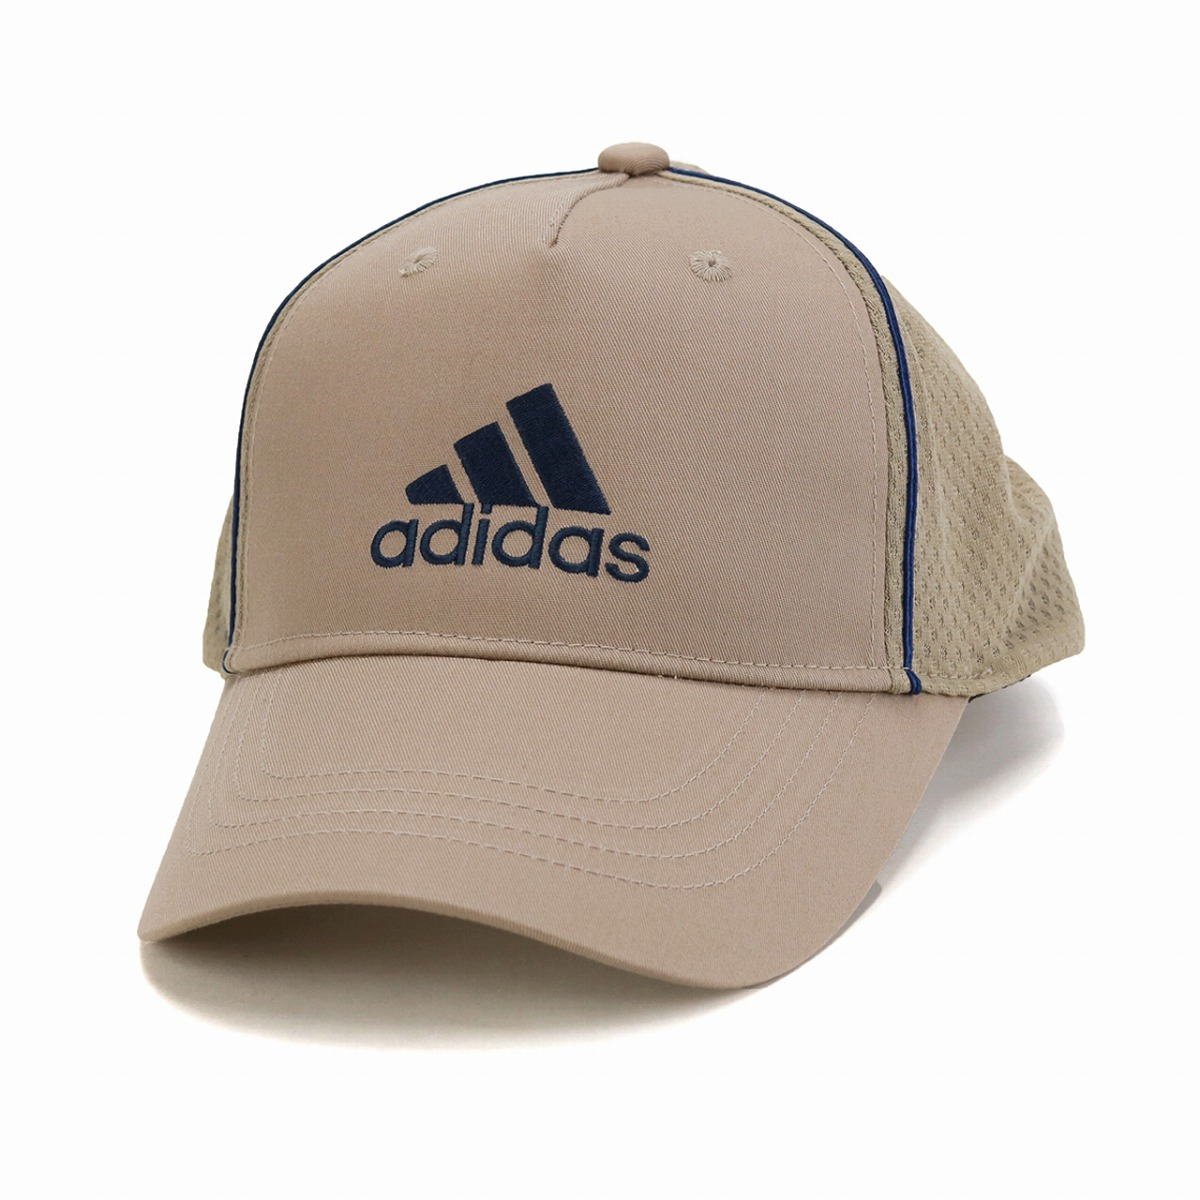 ELEHELM HAT STORE  It is a gift present in mesh cap sports big size ... fa23d35a6